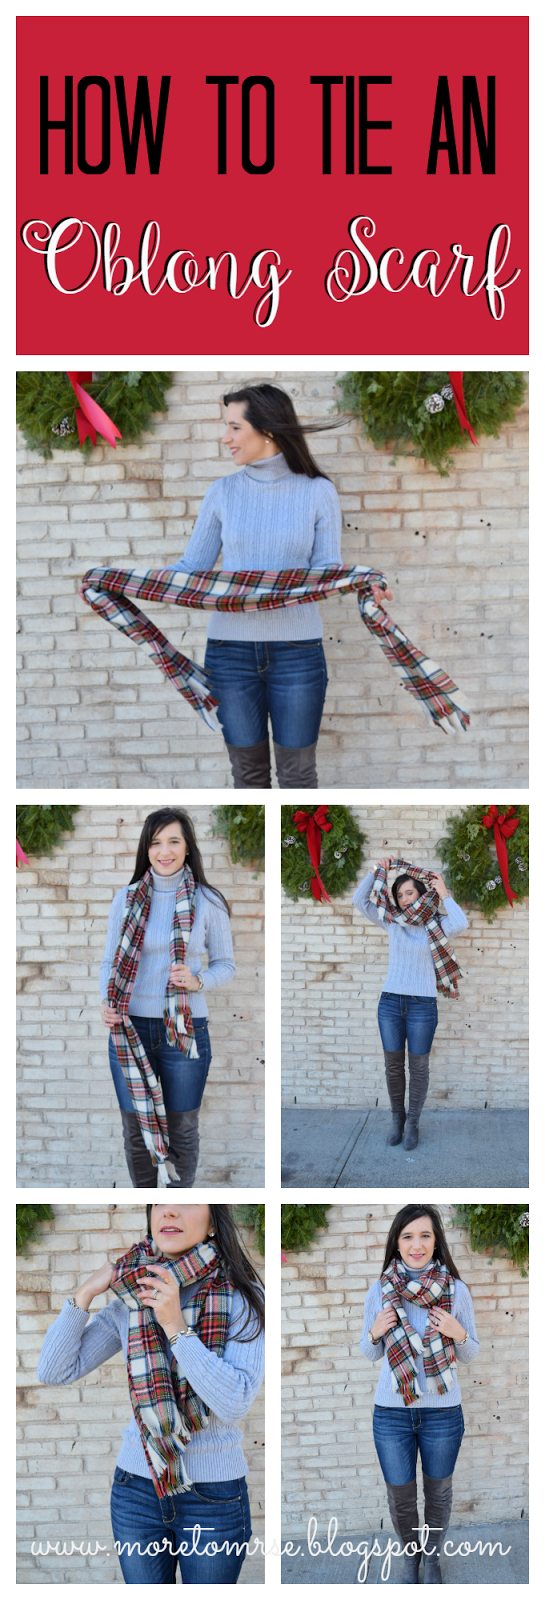 How to Tie a Winter Oblong Scarf